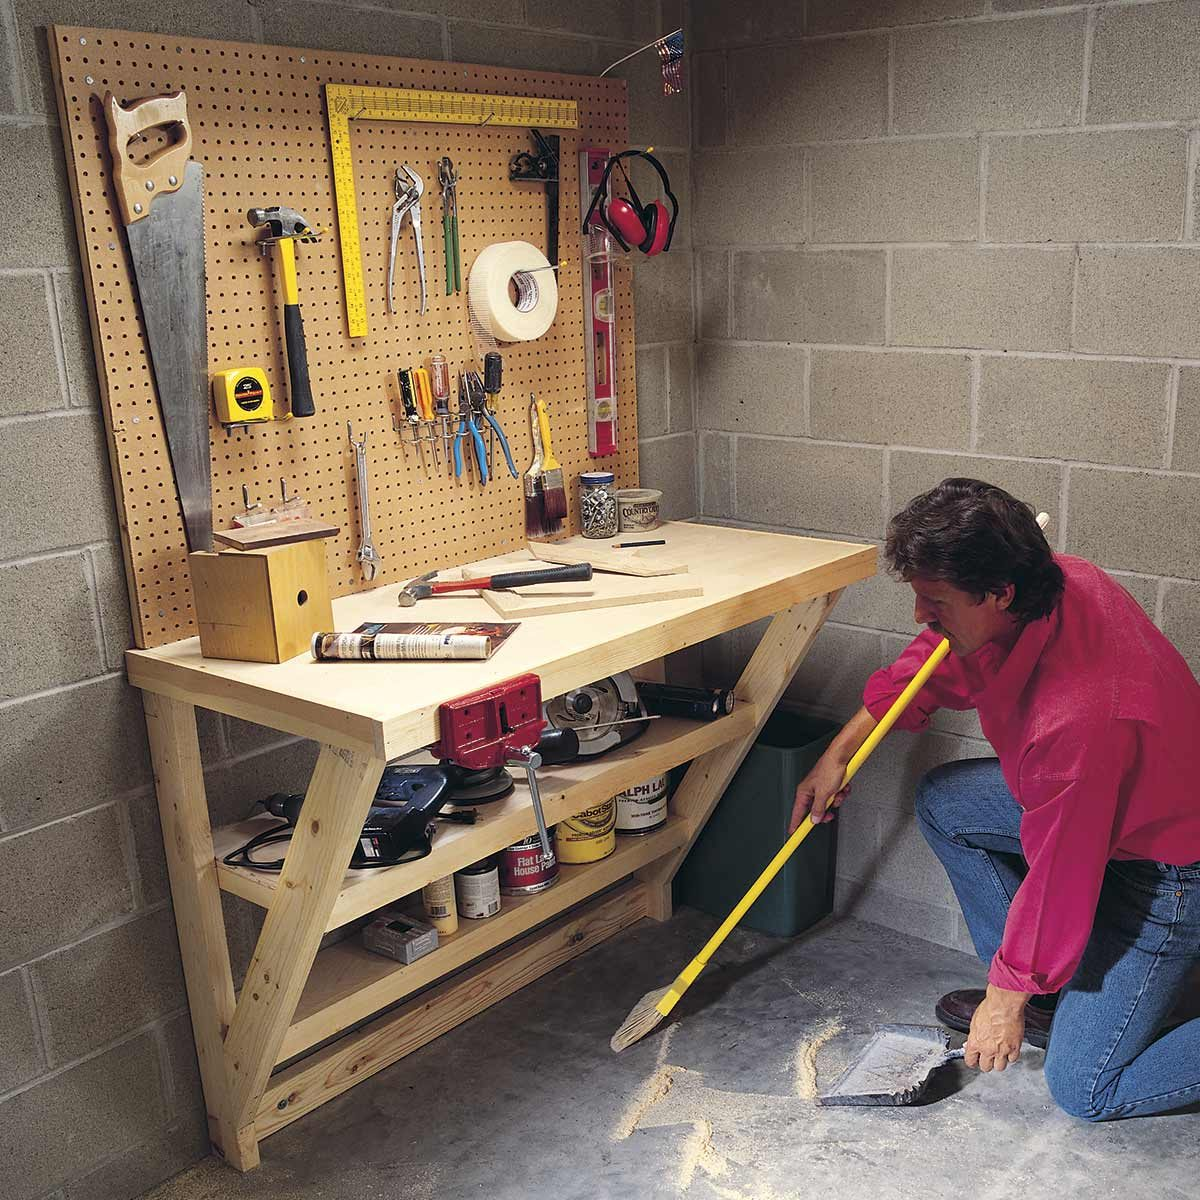 The 10 Best Garage Workbench Builds: 14 Super-Simple Workbenches You Can Build